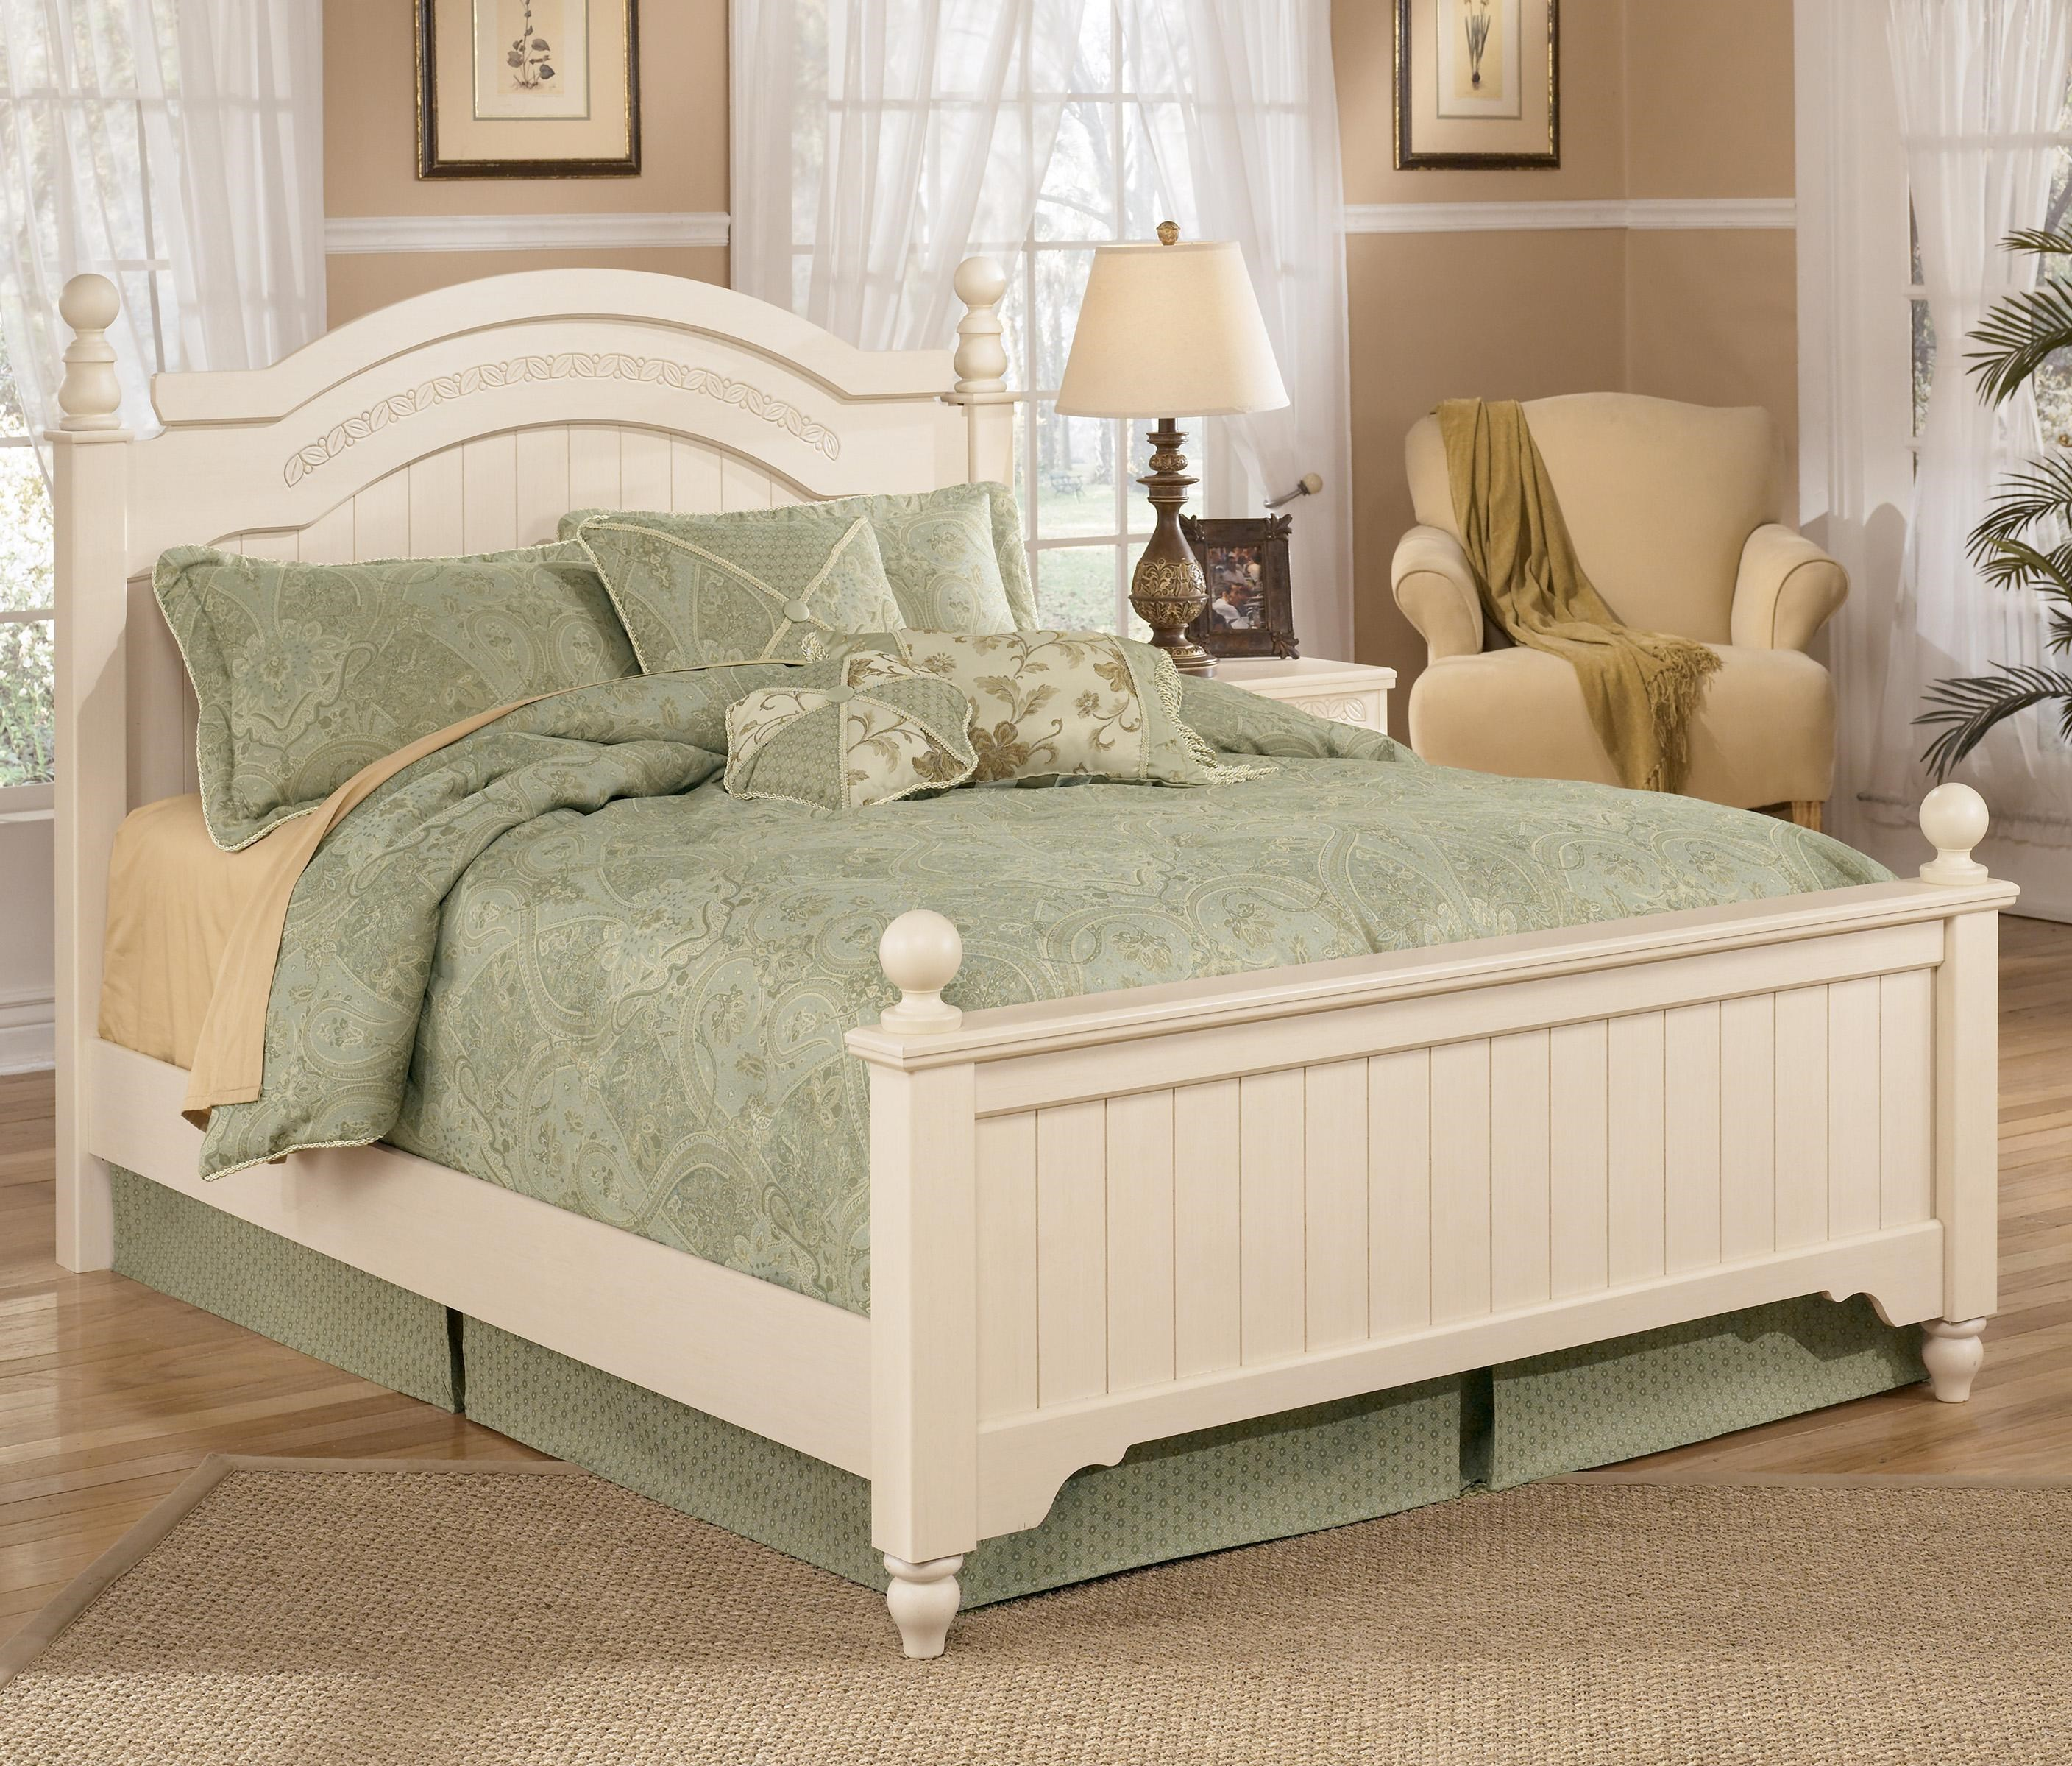 Signature Design by Ashley Cottage Retreat Queen Size